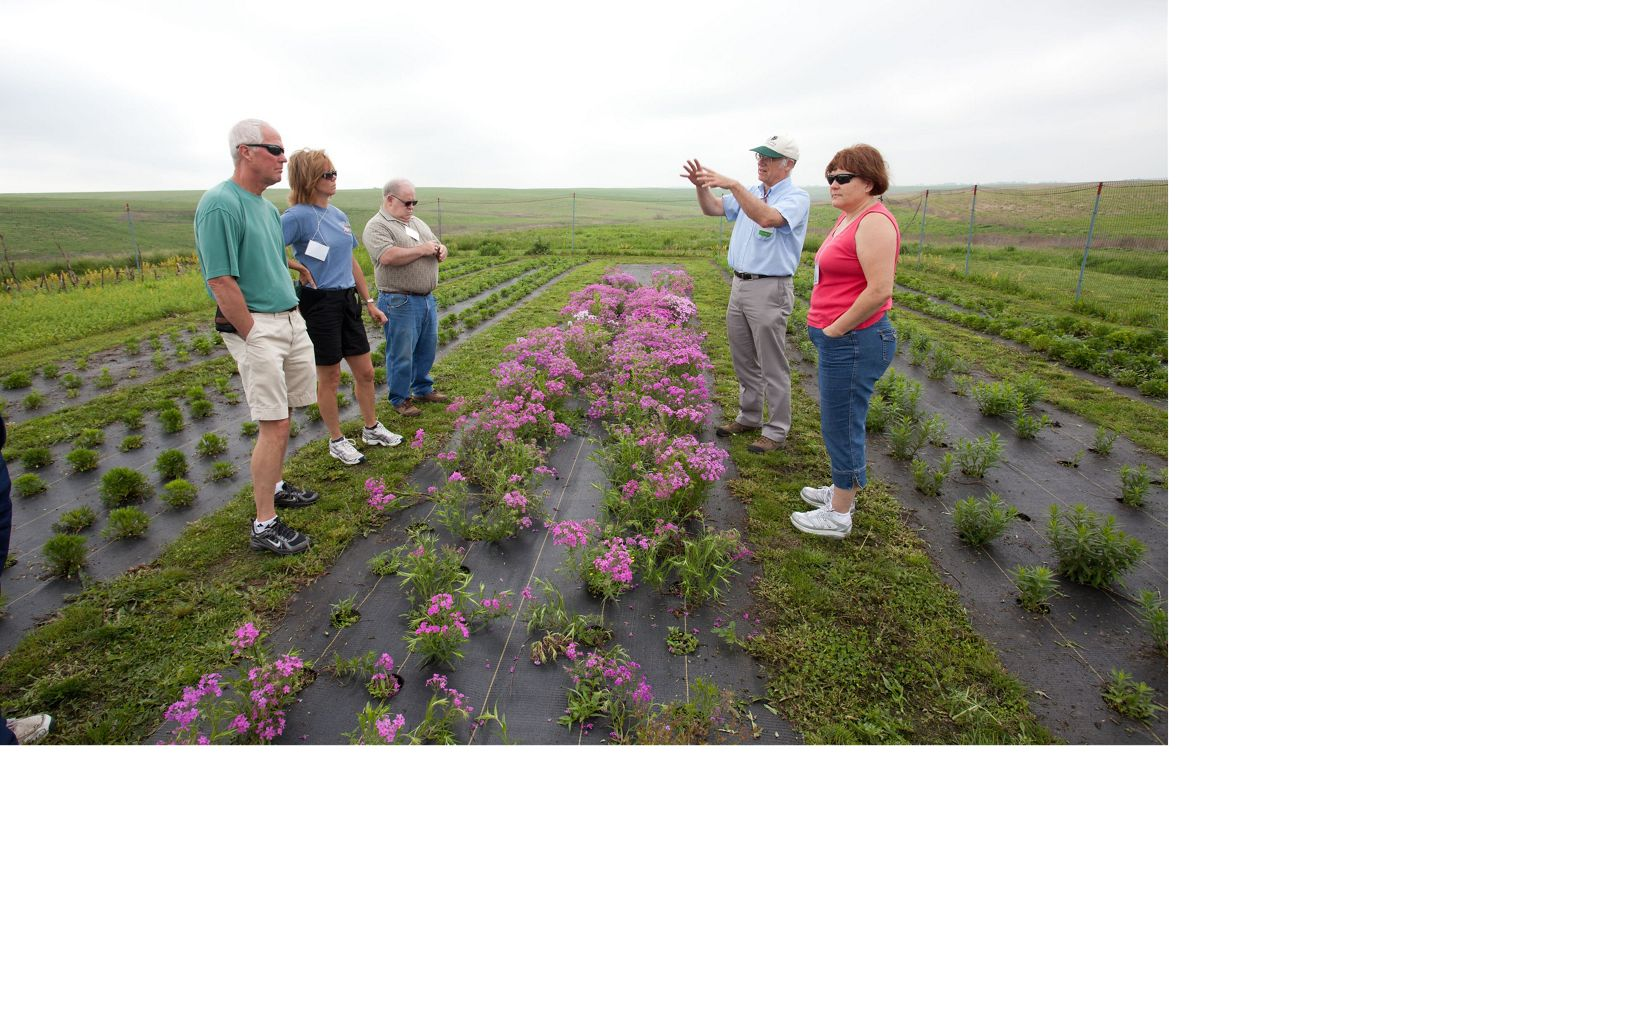 A group of people gather around a forb garden on the prairie